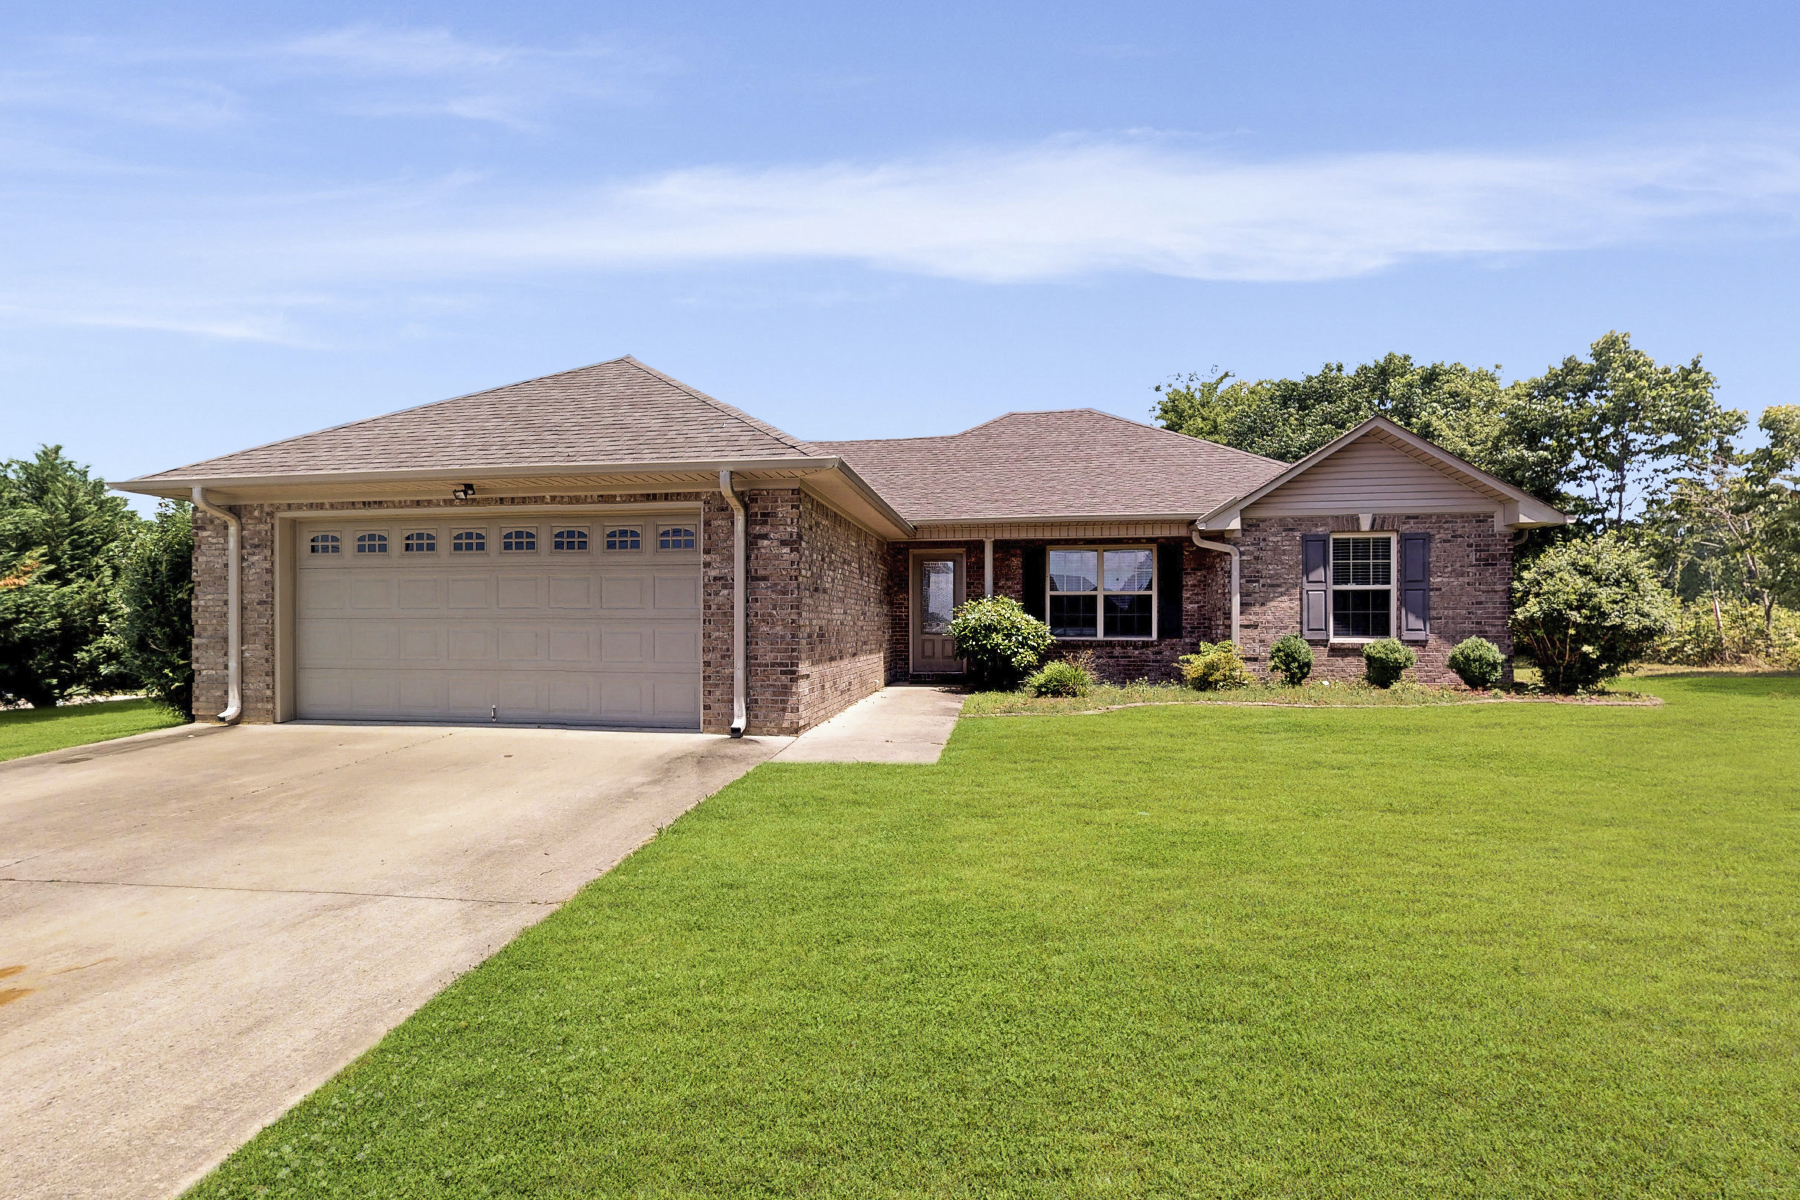 Single Family Home for Active at 24147 Jacobs Drive Athens, Alabama 35613 United States